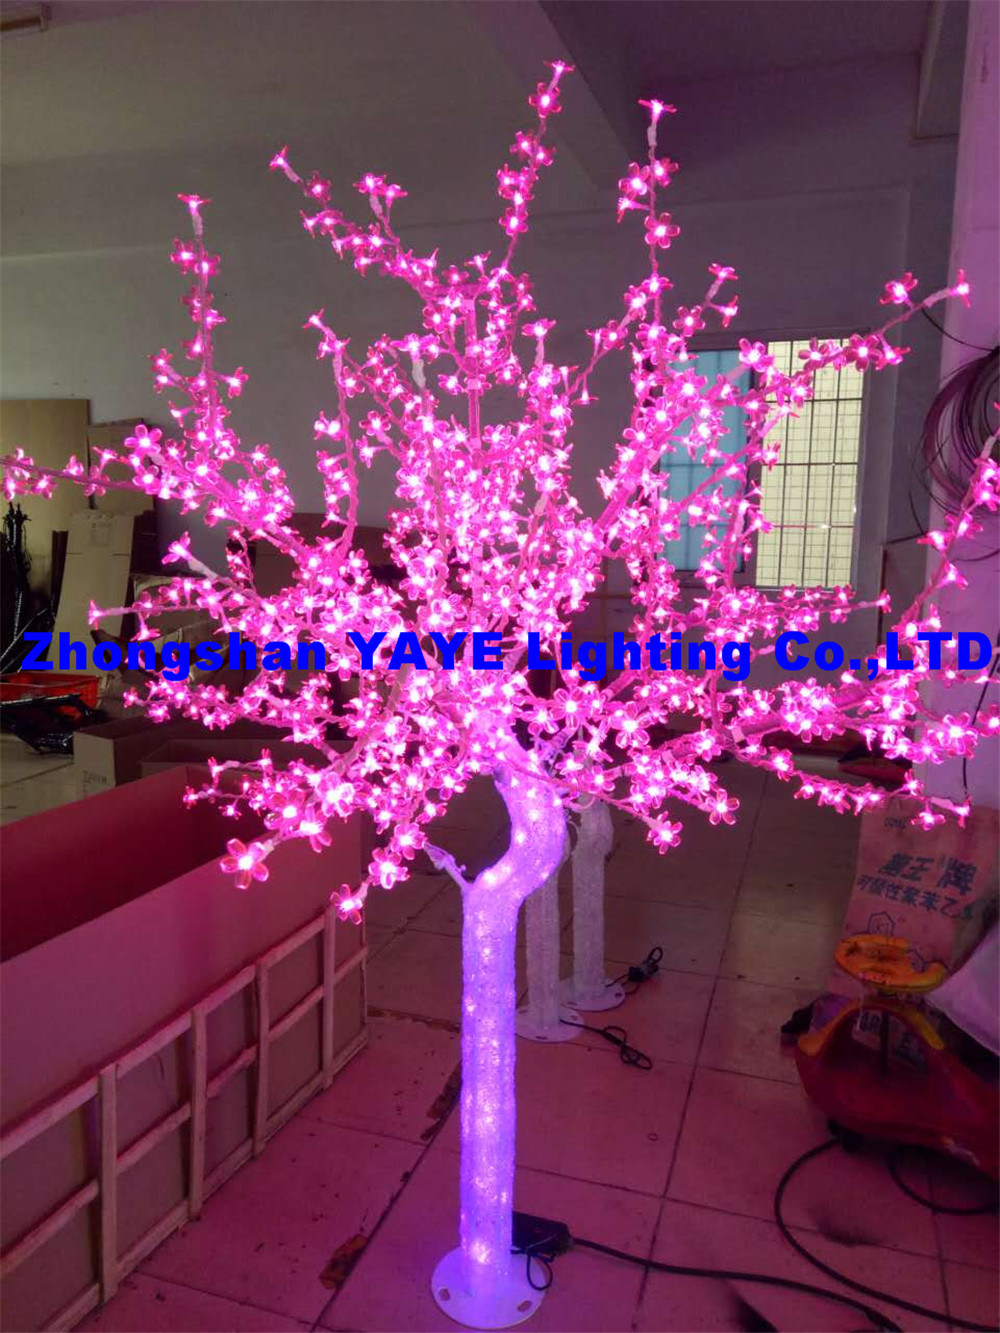 China yaye 18 cerohs 2 years warranty abs outdoor led tree light china yaye 18 cerohs 2 years warranty abs outdoor led tree light led christmas tree light pink led tree lights china abs led tree lights aloadofball Gallery